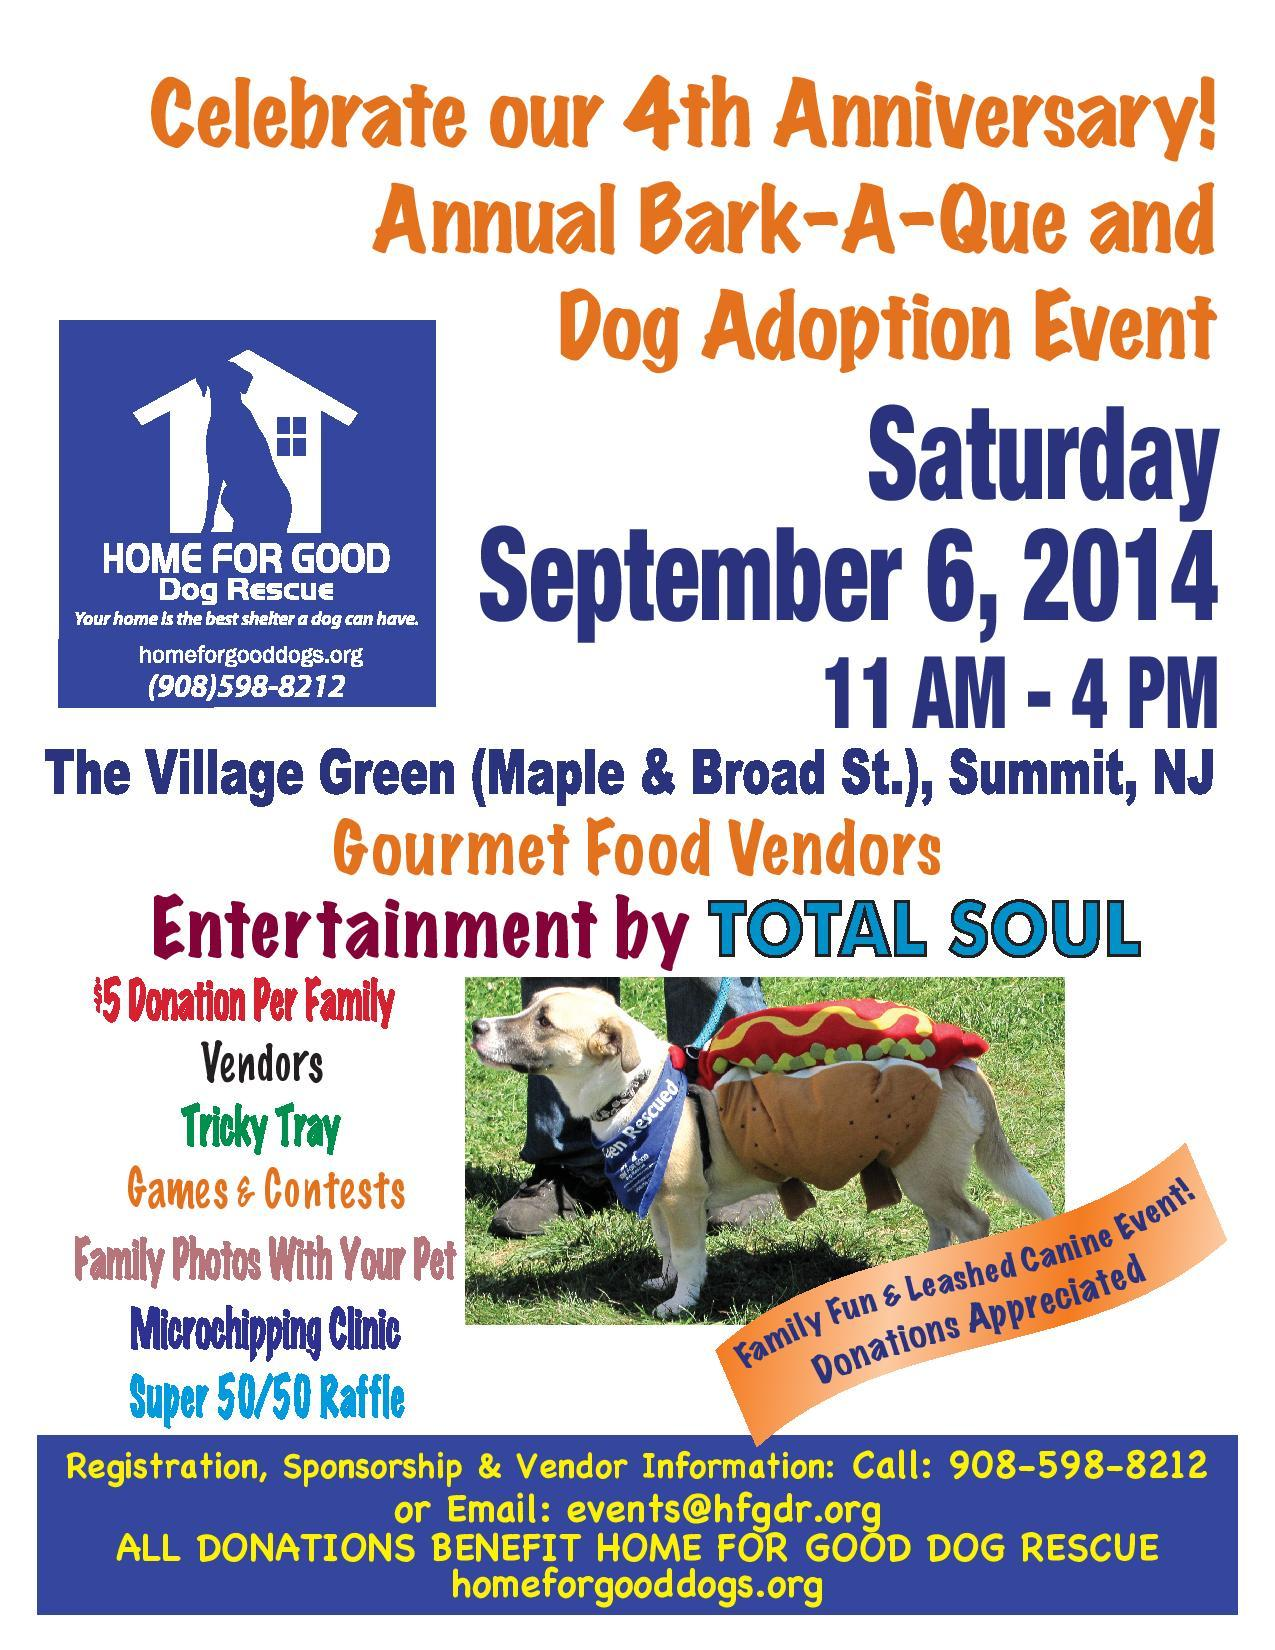 bb07185022be13a725a3_Bark-A-Que_2014_Flyer.jpg